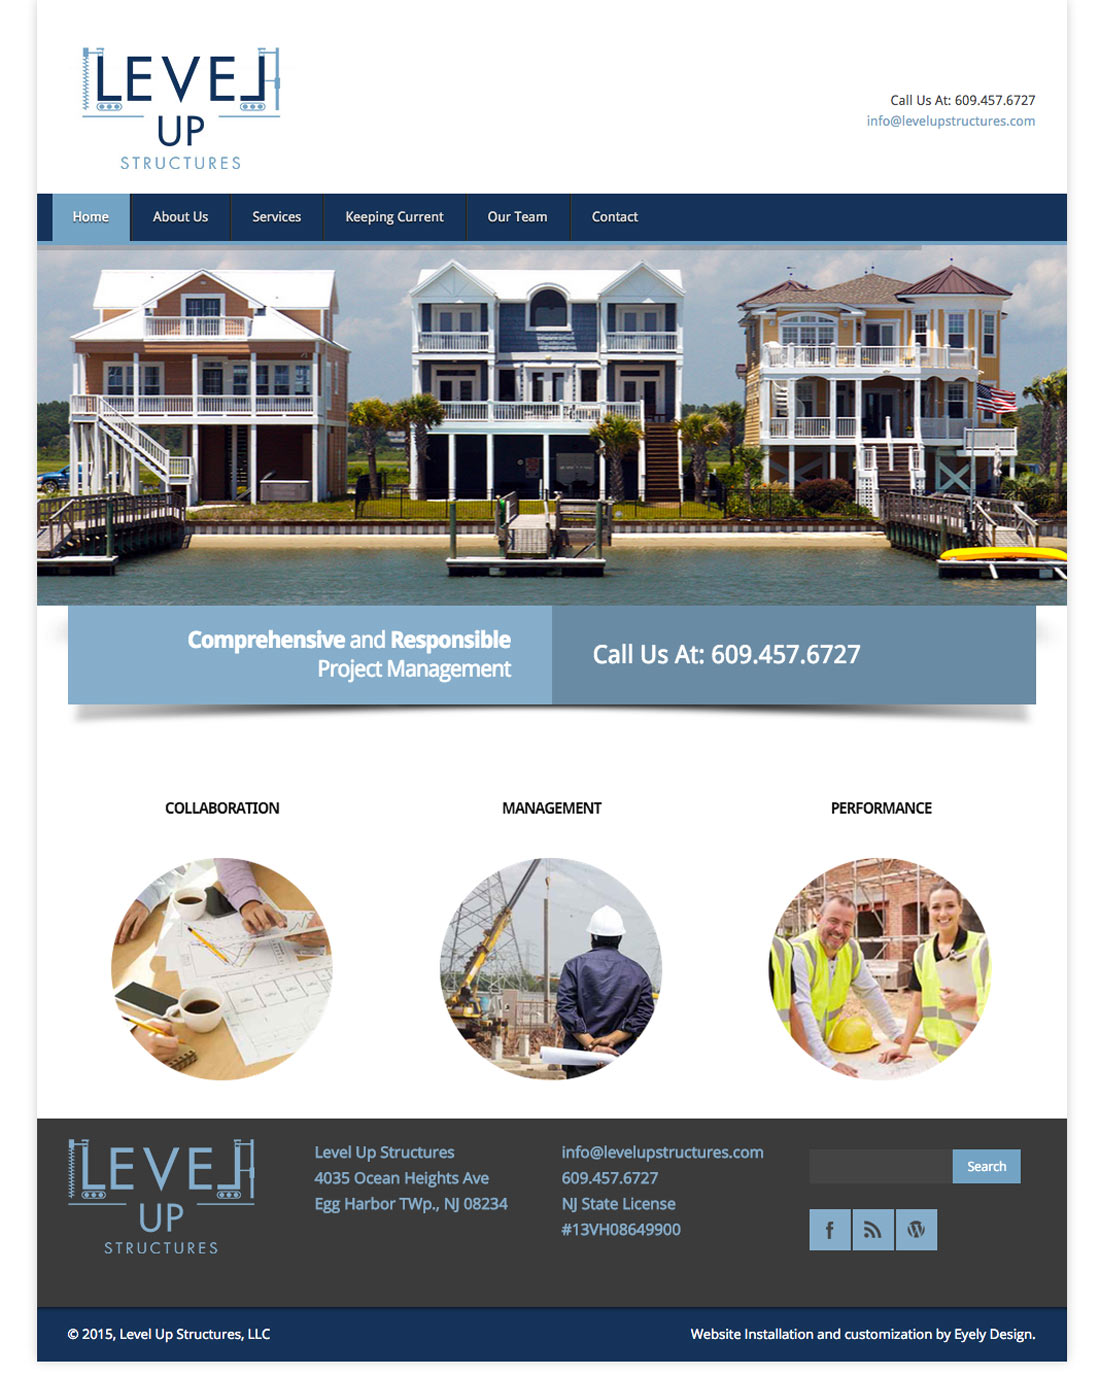 level up structures website building management construction builders house lifters home south jersey nj new jersey